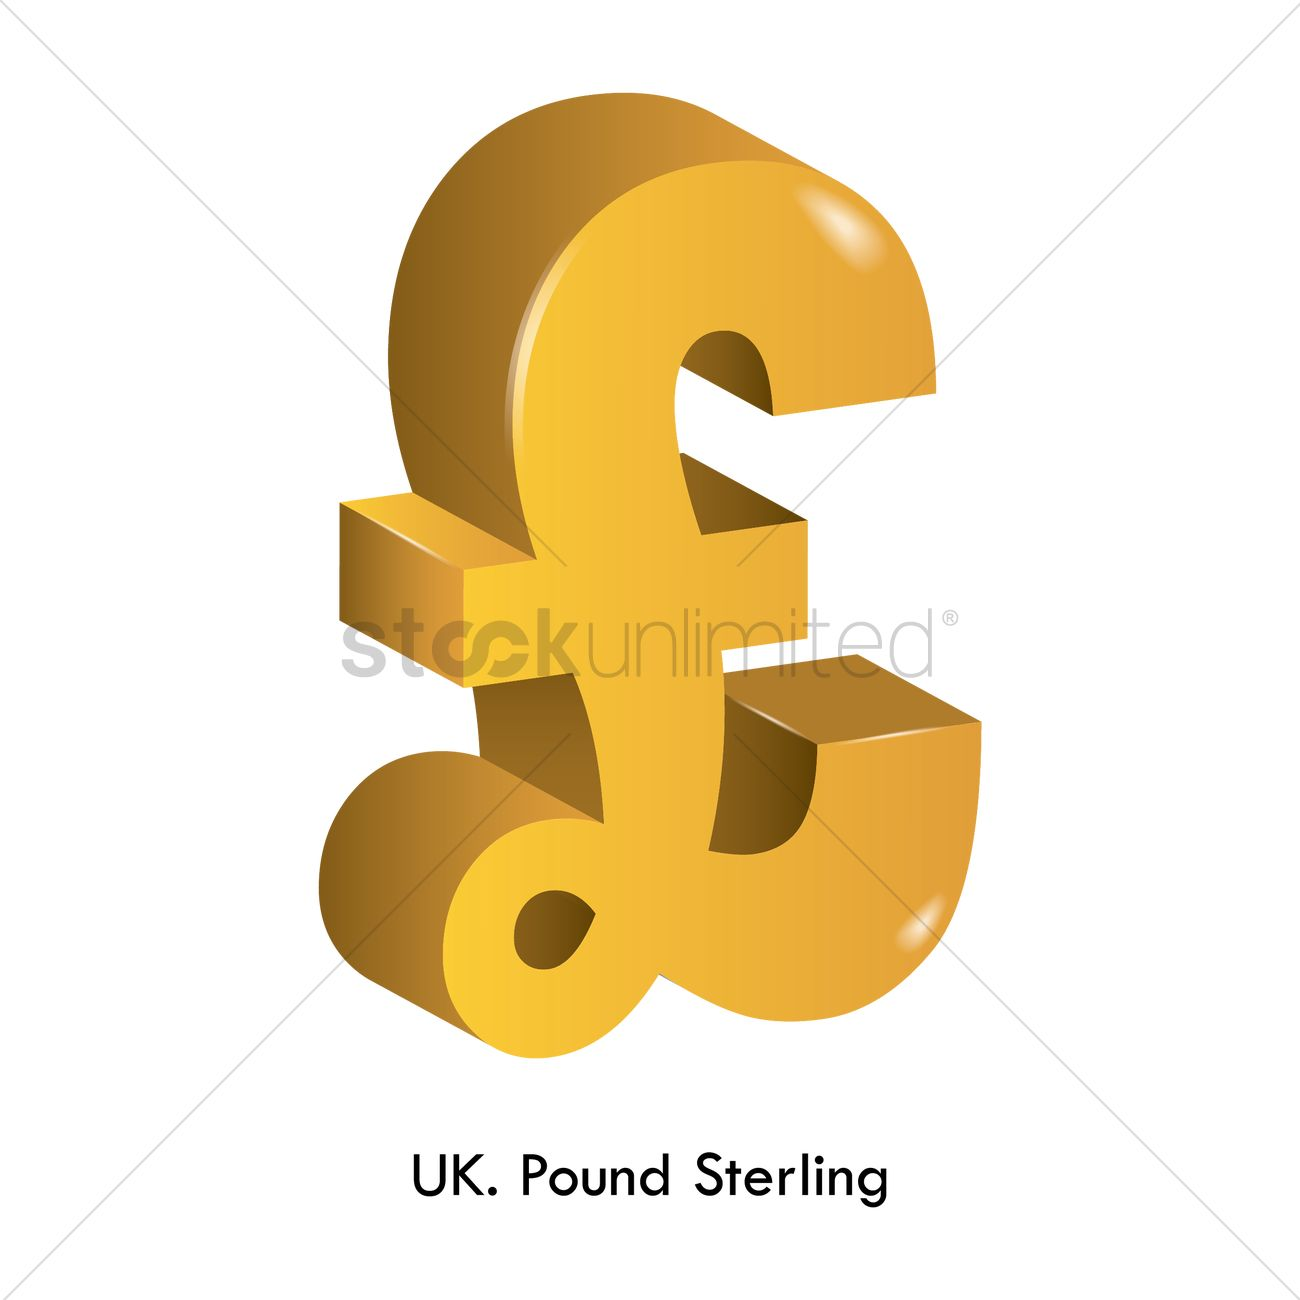 Pound Sterling Currency Vector Image 1821511 Stockunlimited